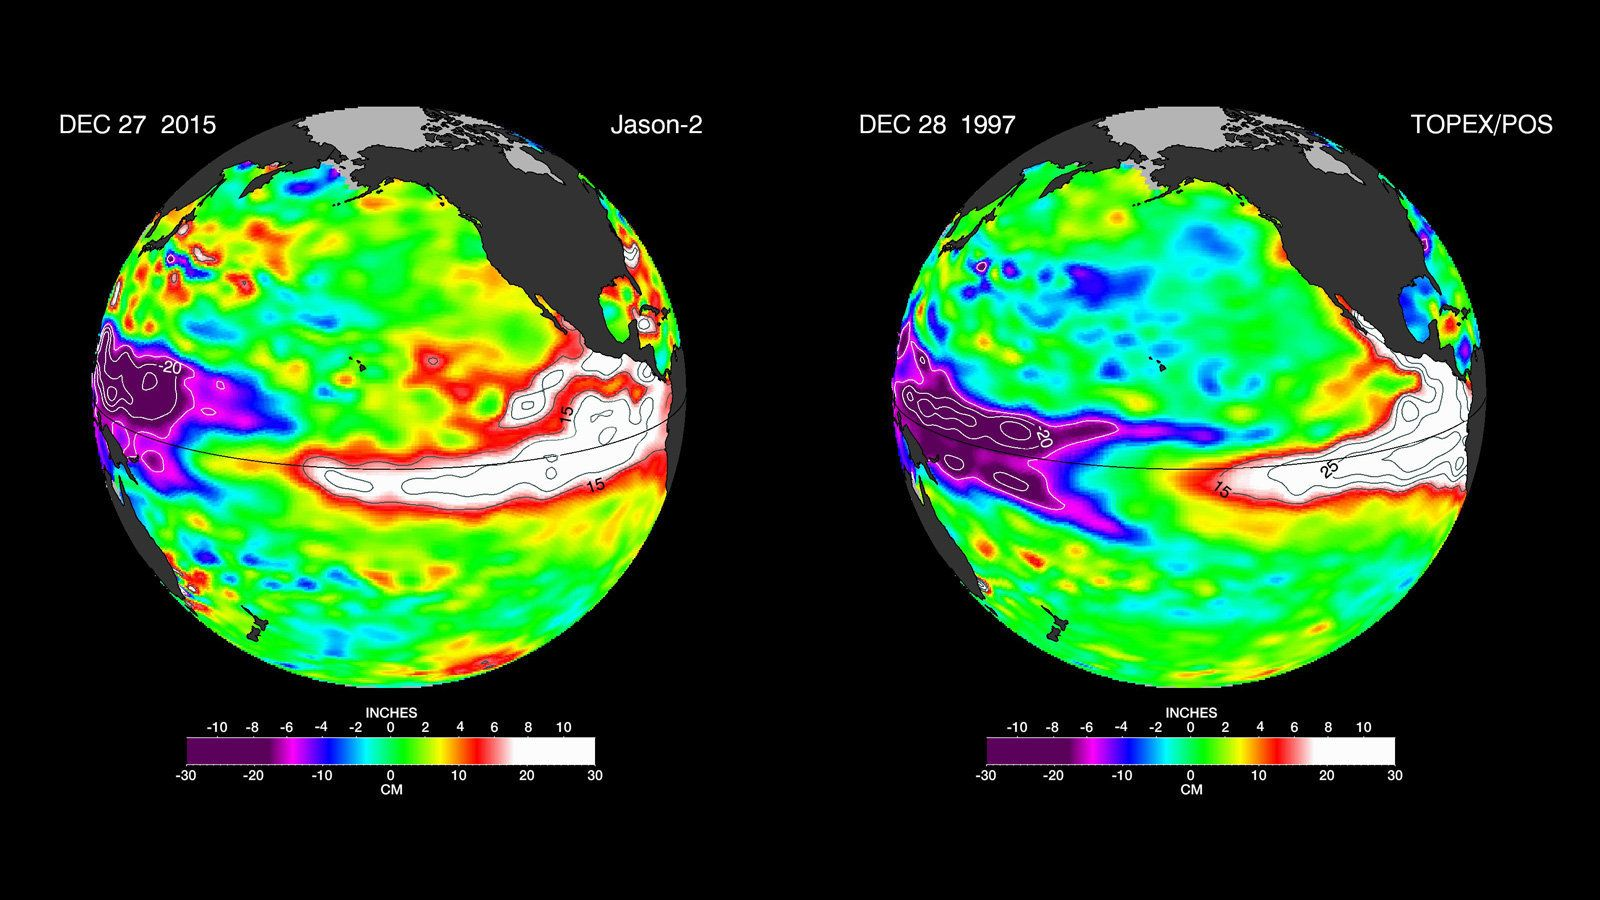 The latest satellite image of Pacific sea surface heights (left) differs slightly from one 18 years ago (right). In Dec. 1997